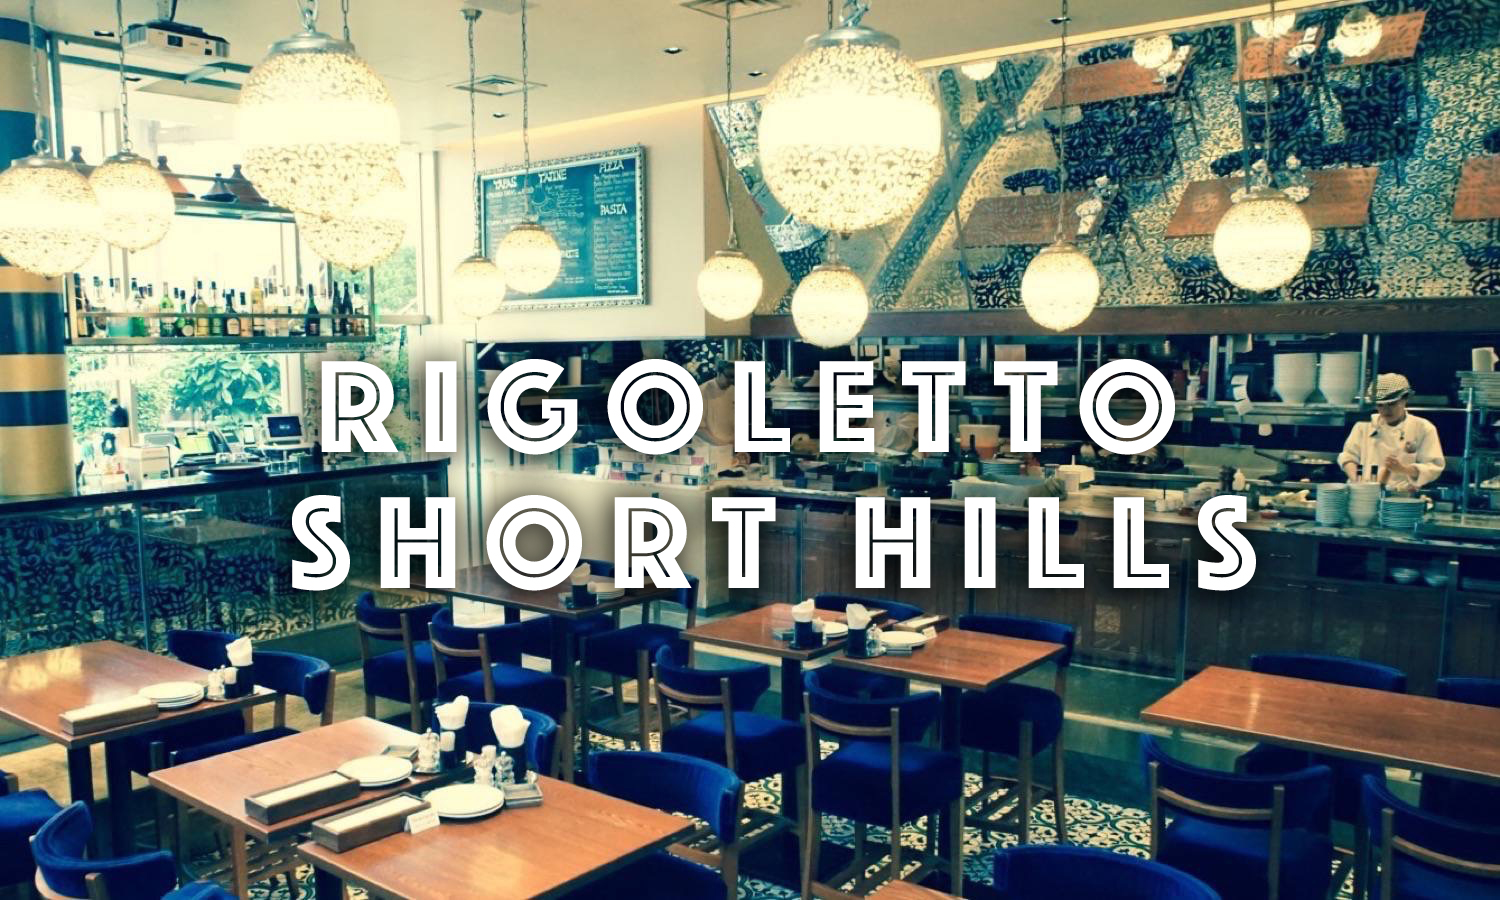 Nakameguro cafe RIGOLETTO SHORT HILLS Top